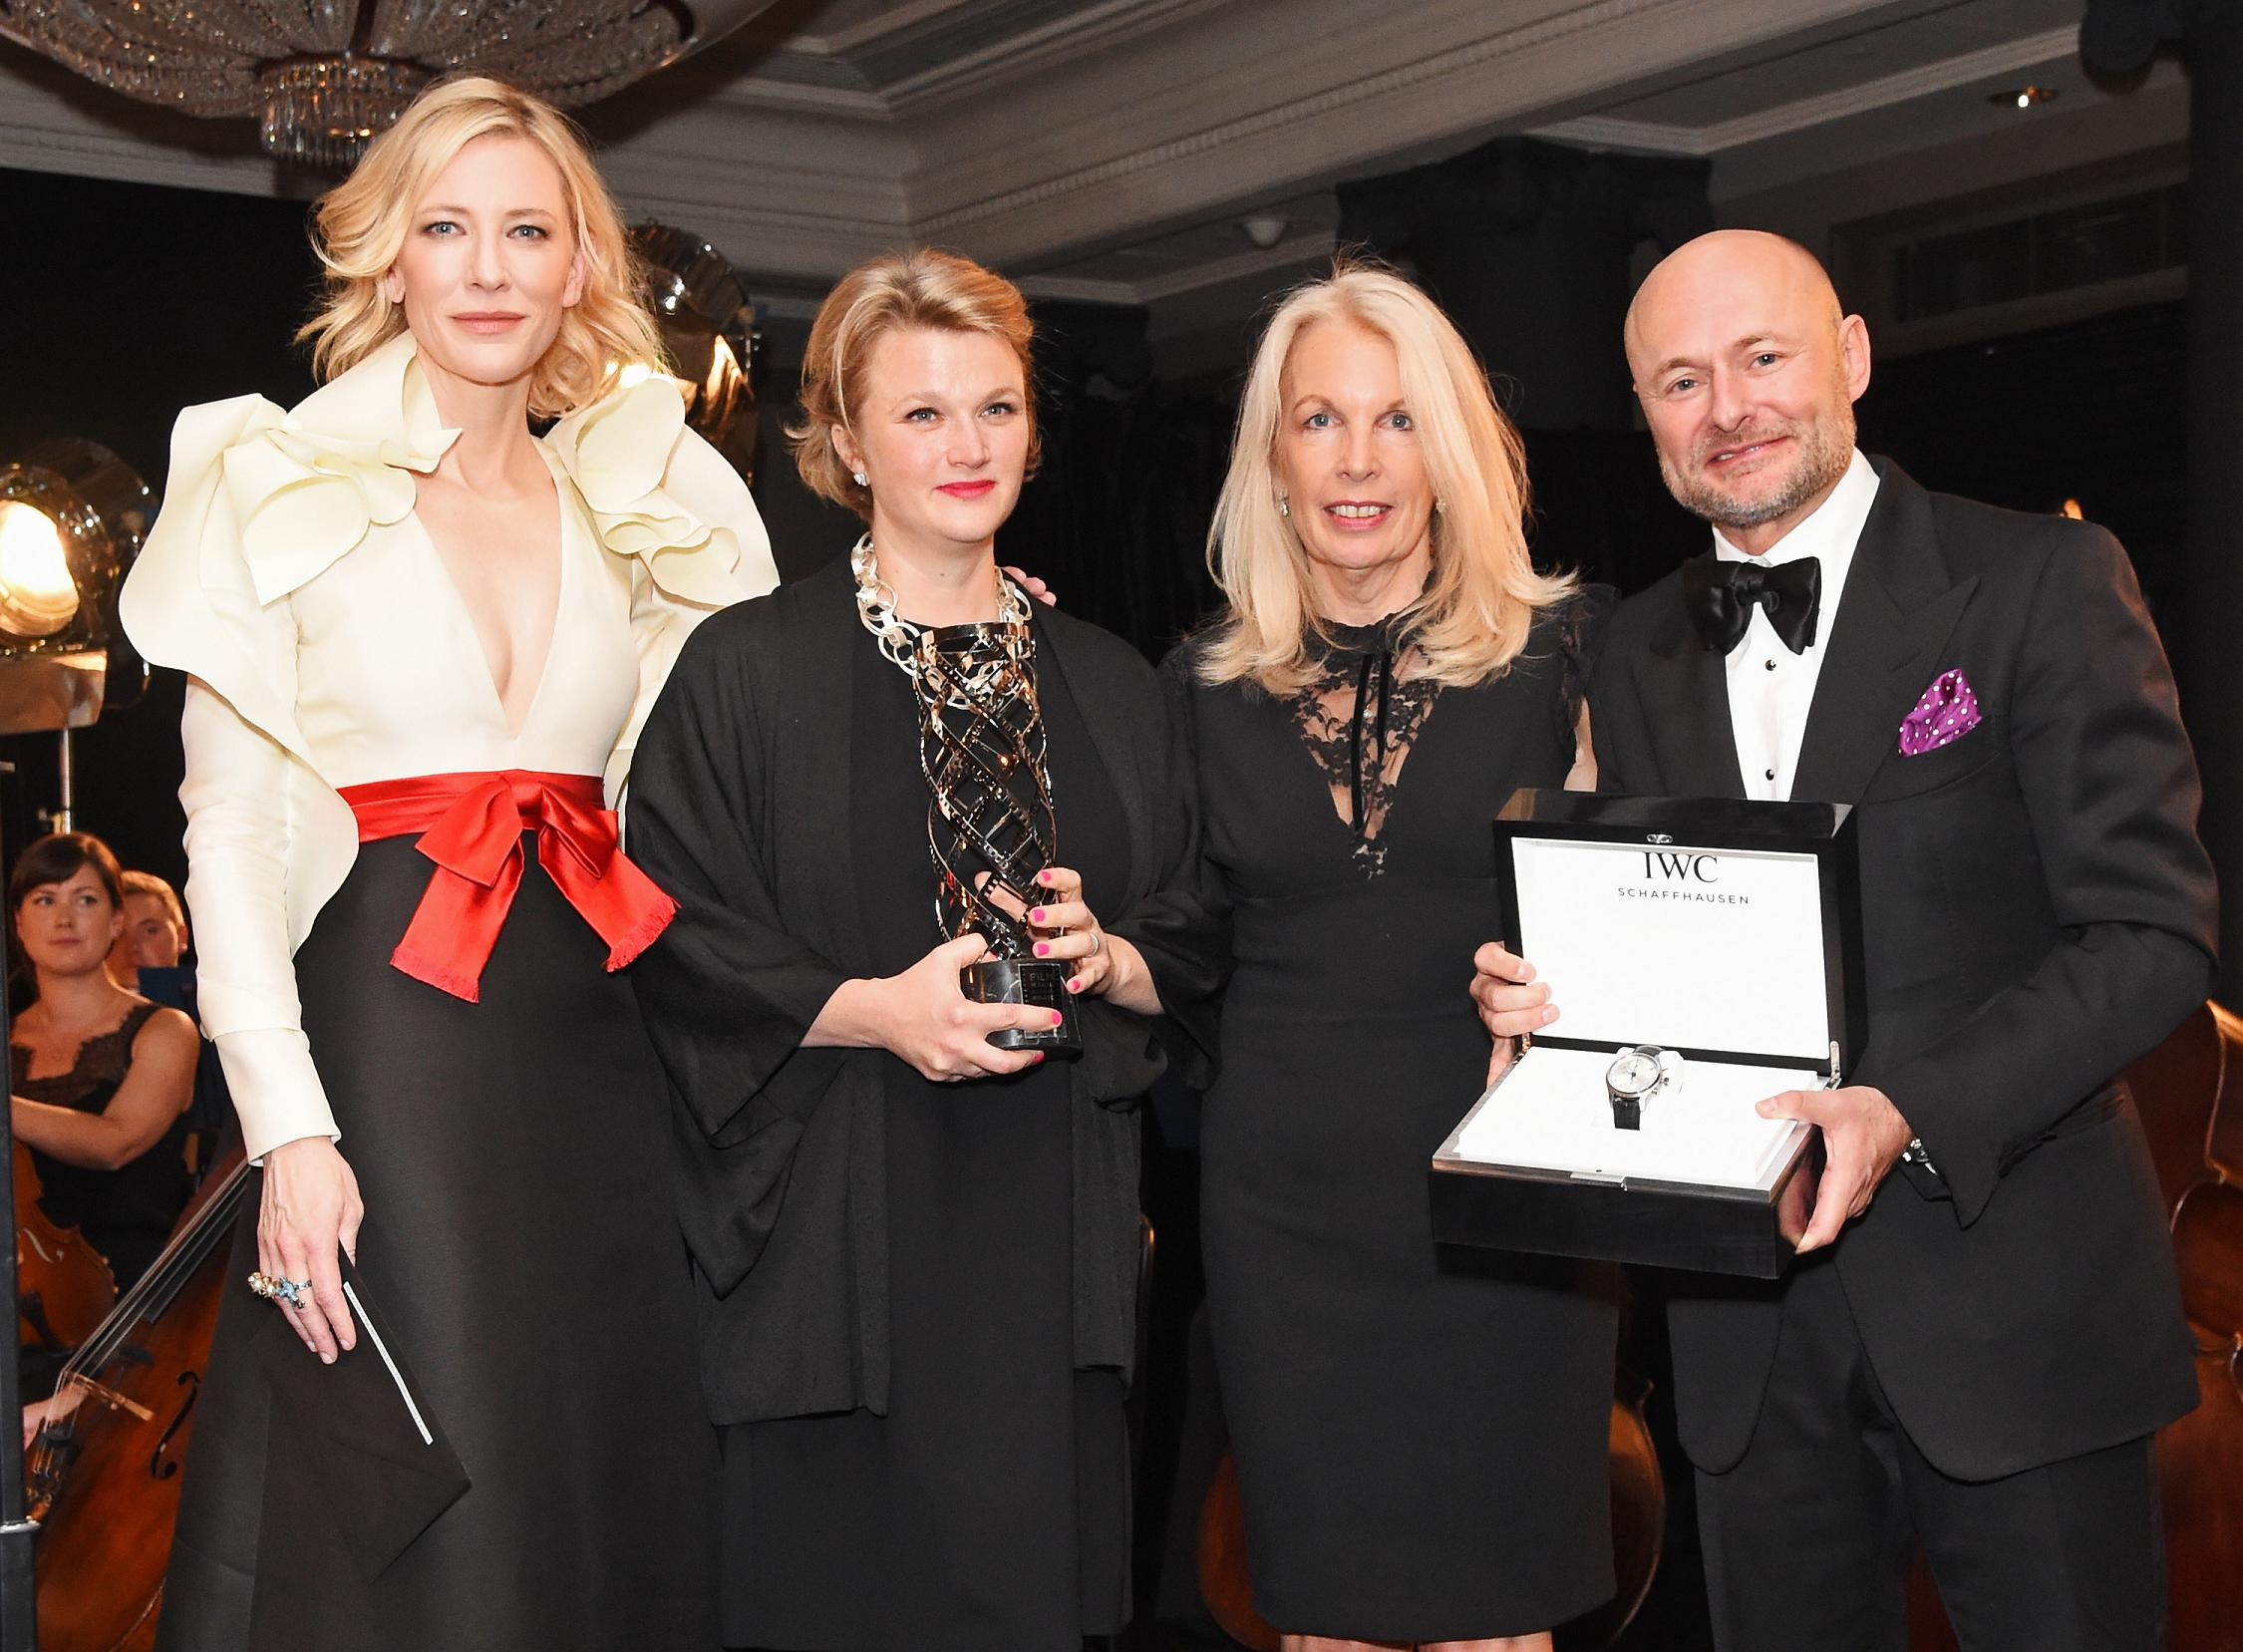 LONDON, ENGLAND - OCTOBER 04: (L to R) Cate Blanchett, Hope Dickson-Leach, BFI CEO Amanda Nevill and IWC CEO Georges Kern attend the IWC Schaffhausen Dinner in Honour of the BFI at Rosewood London on October 4, 2016 in London, England. (Photo by David M. Benett/Dave Benett/Getty Images for IWC Schaffhausen )